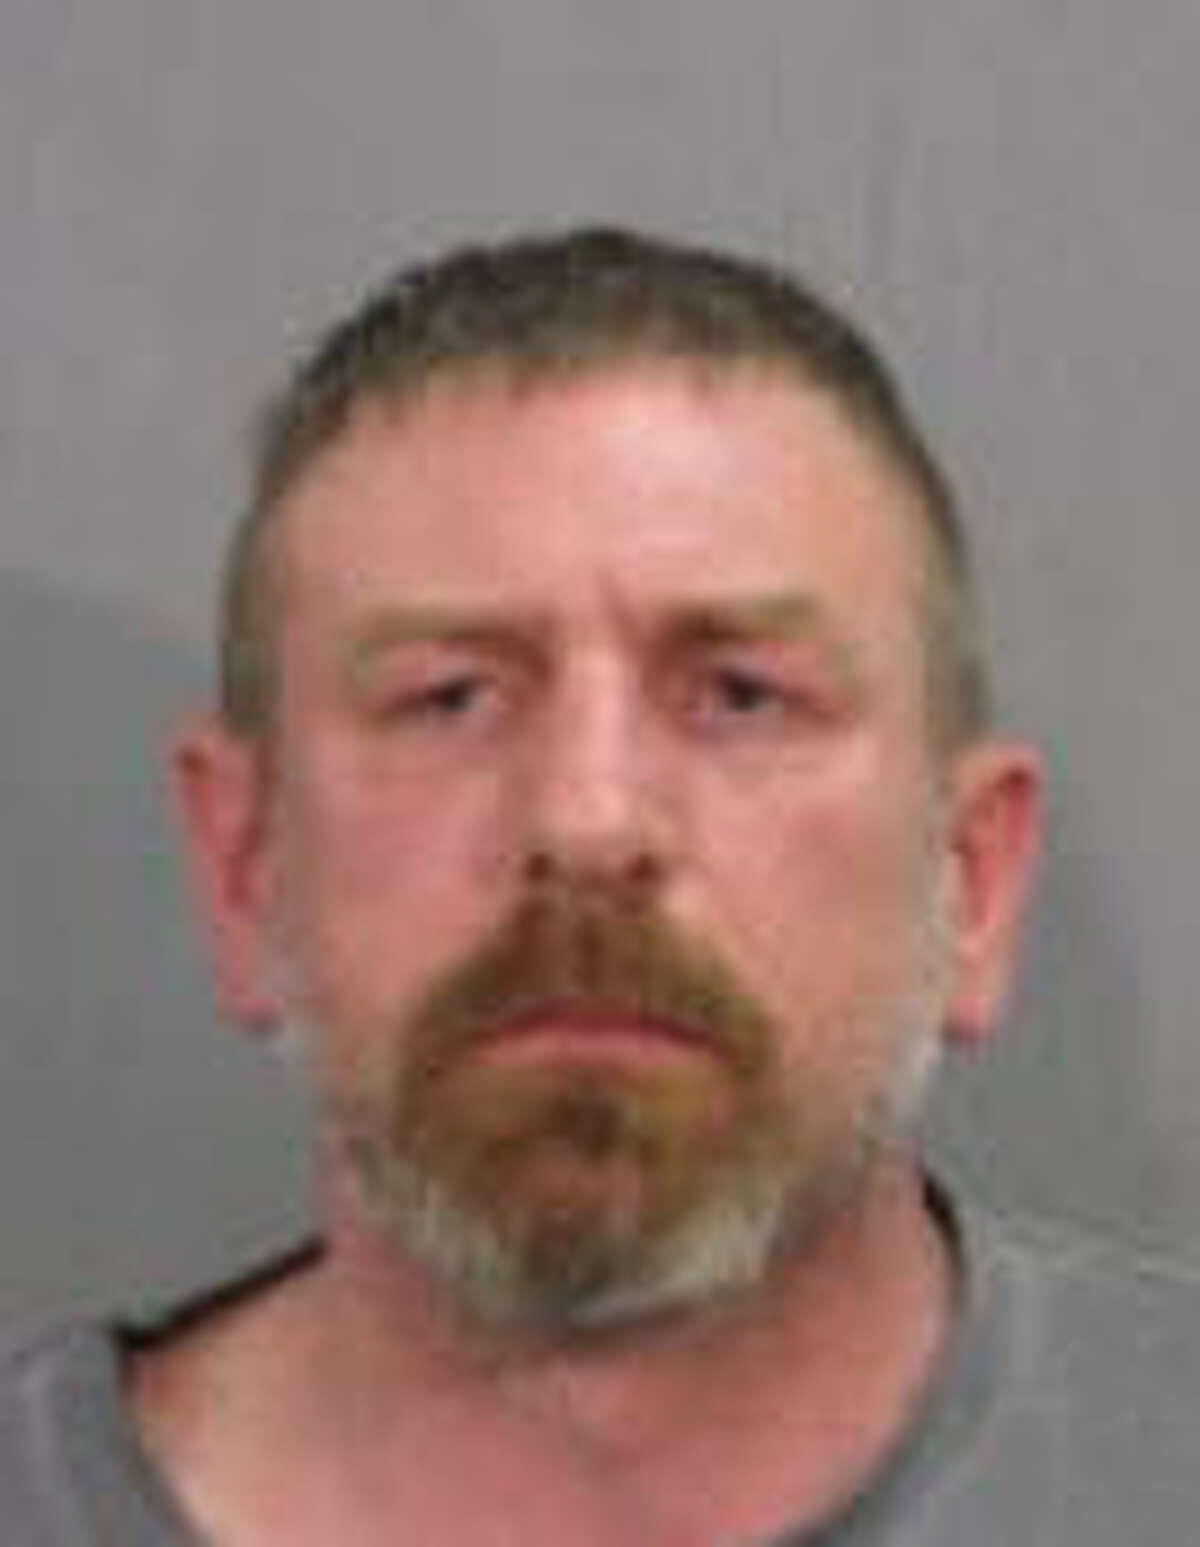 Russell Lawrence Ziemba was arrested Sunday after an incident at a downtown hotel. He is shown here in prior mugshots.